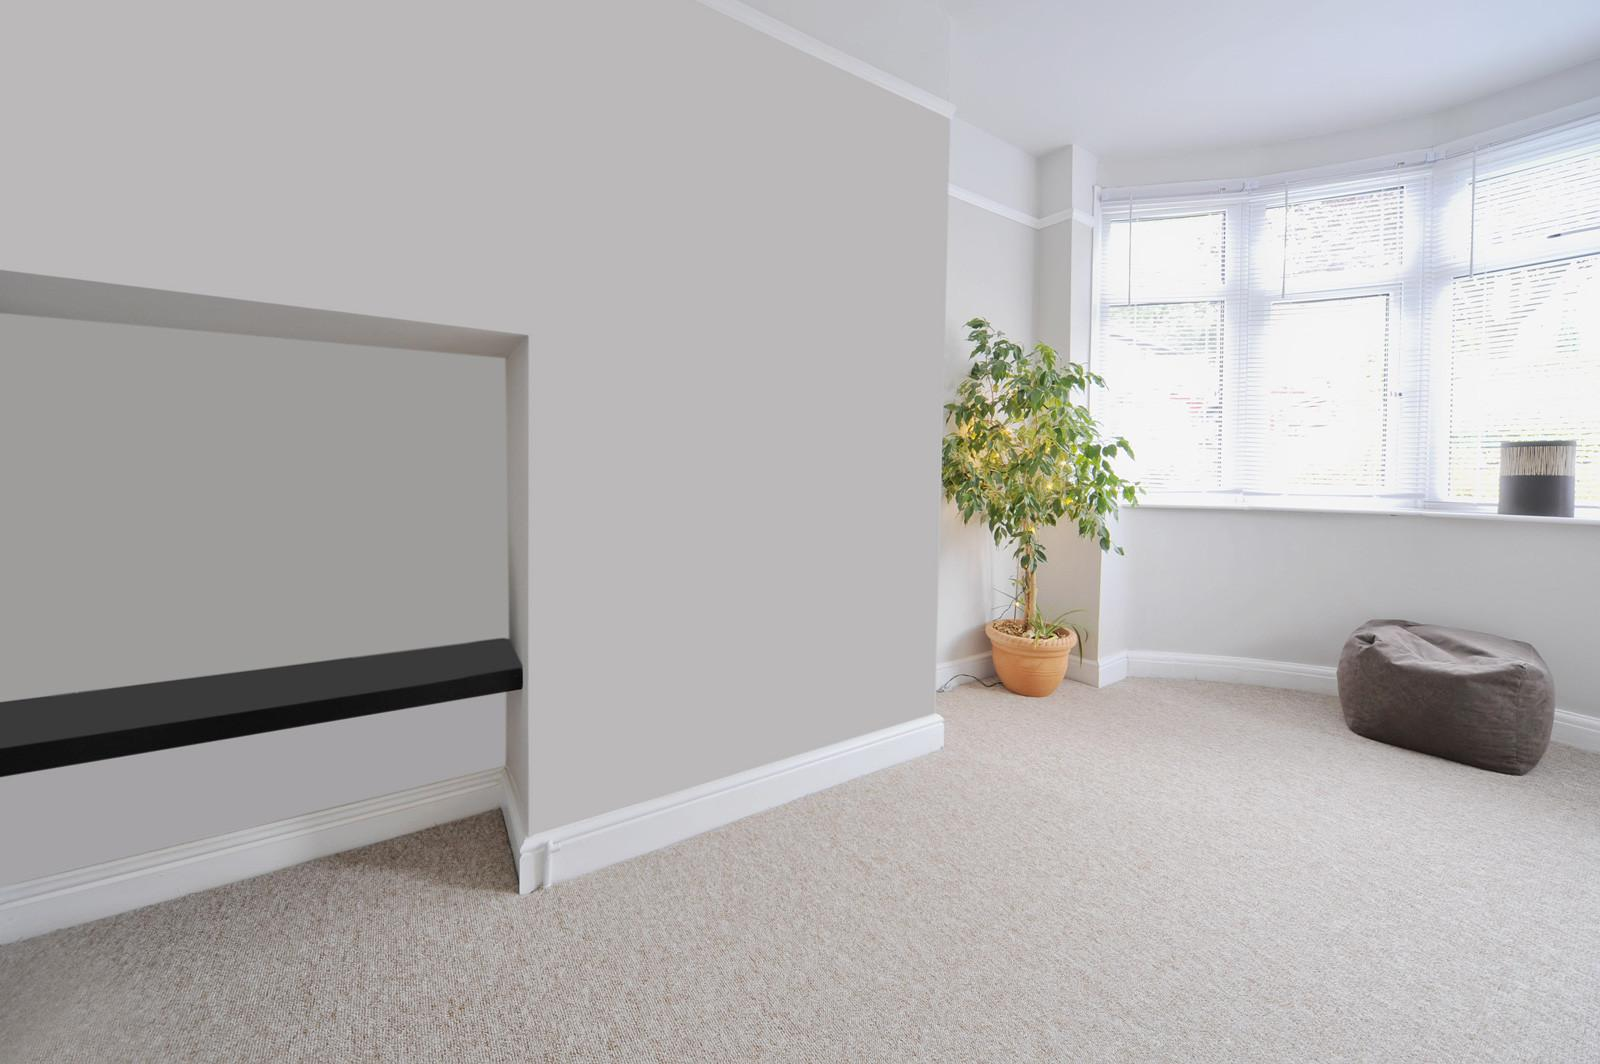 100 Minimalist Decorating Small Spaces Painting